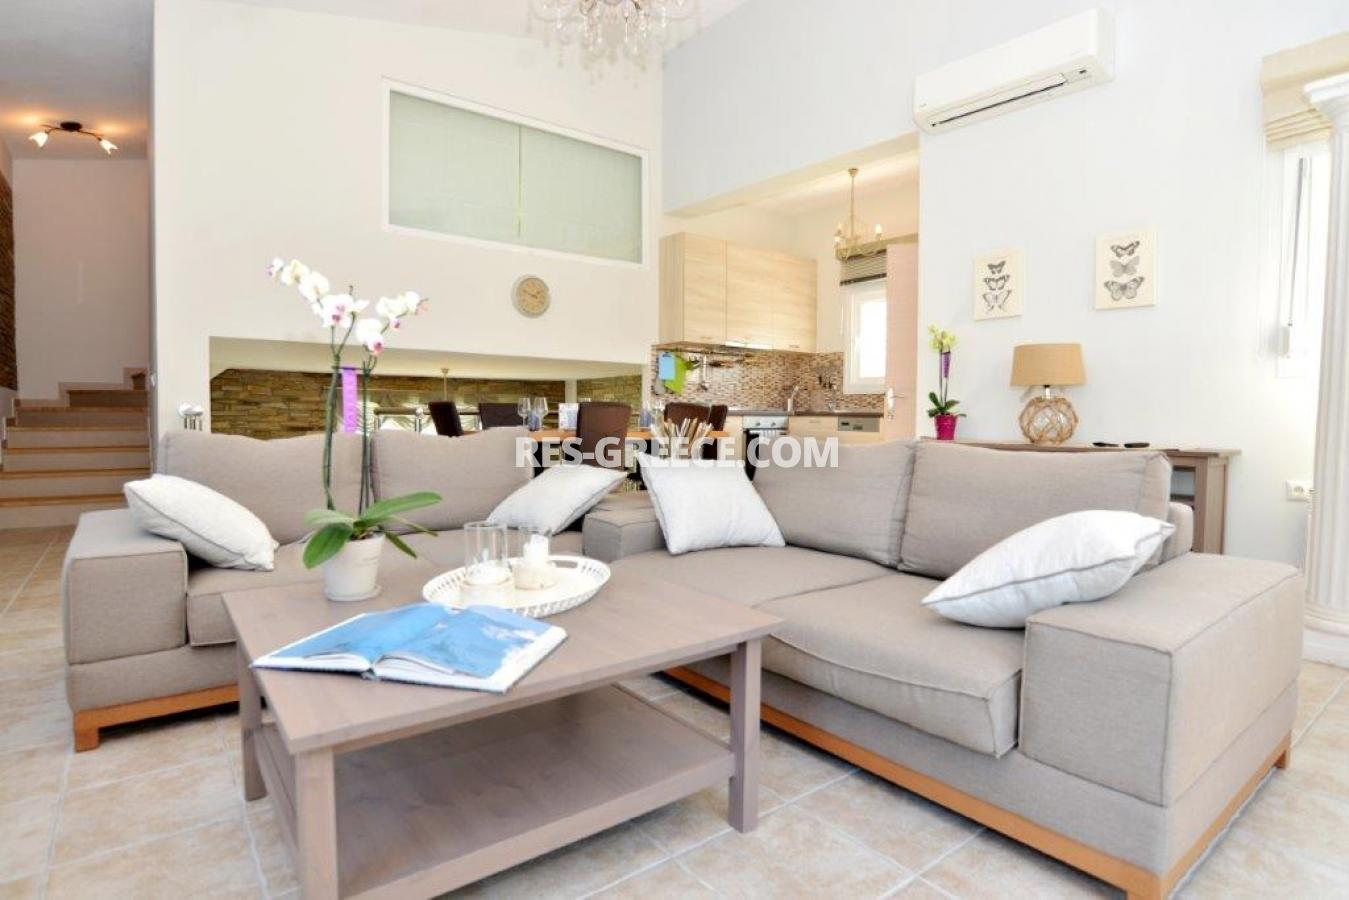 Arhondula Villa 3, Northern Aegean Islands, Greece - ready beachfront complex for rent on Thassos island with EOT licences - Photo 4